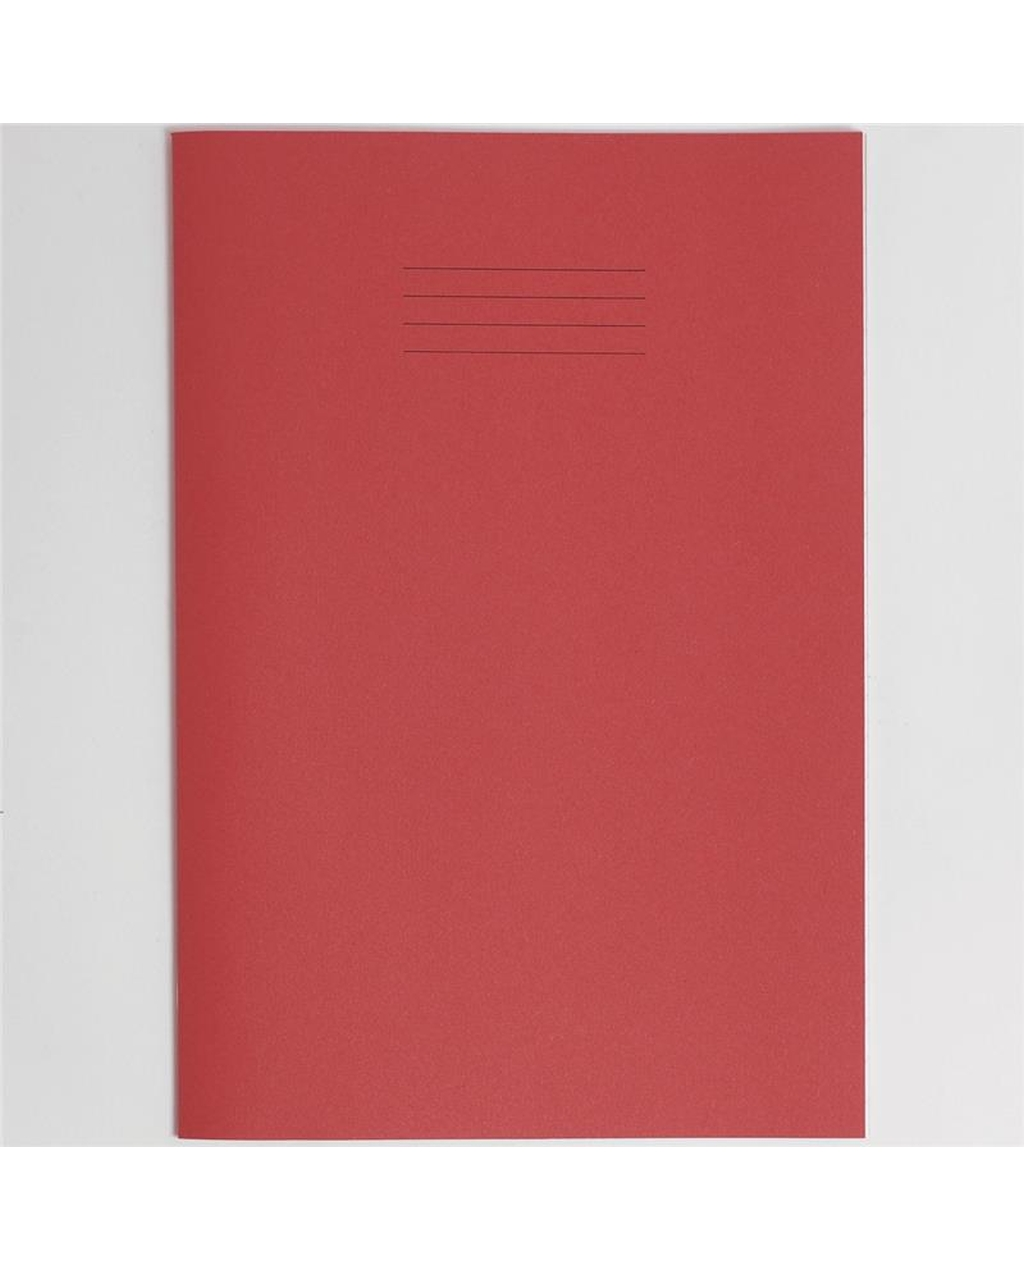 Exercise Book A4+ (330 x 250mm) Red Cover12mm Ruled 80 Pages